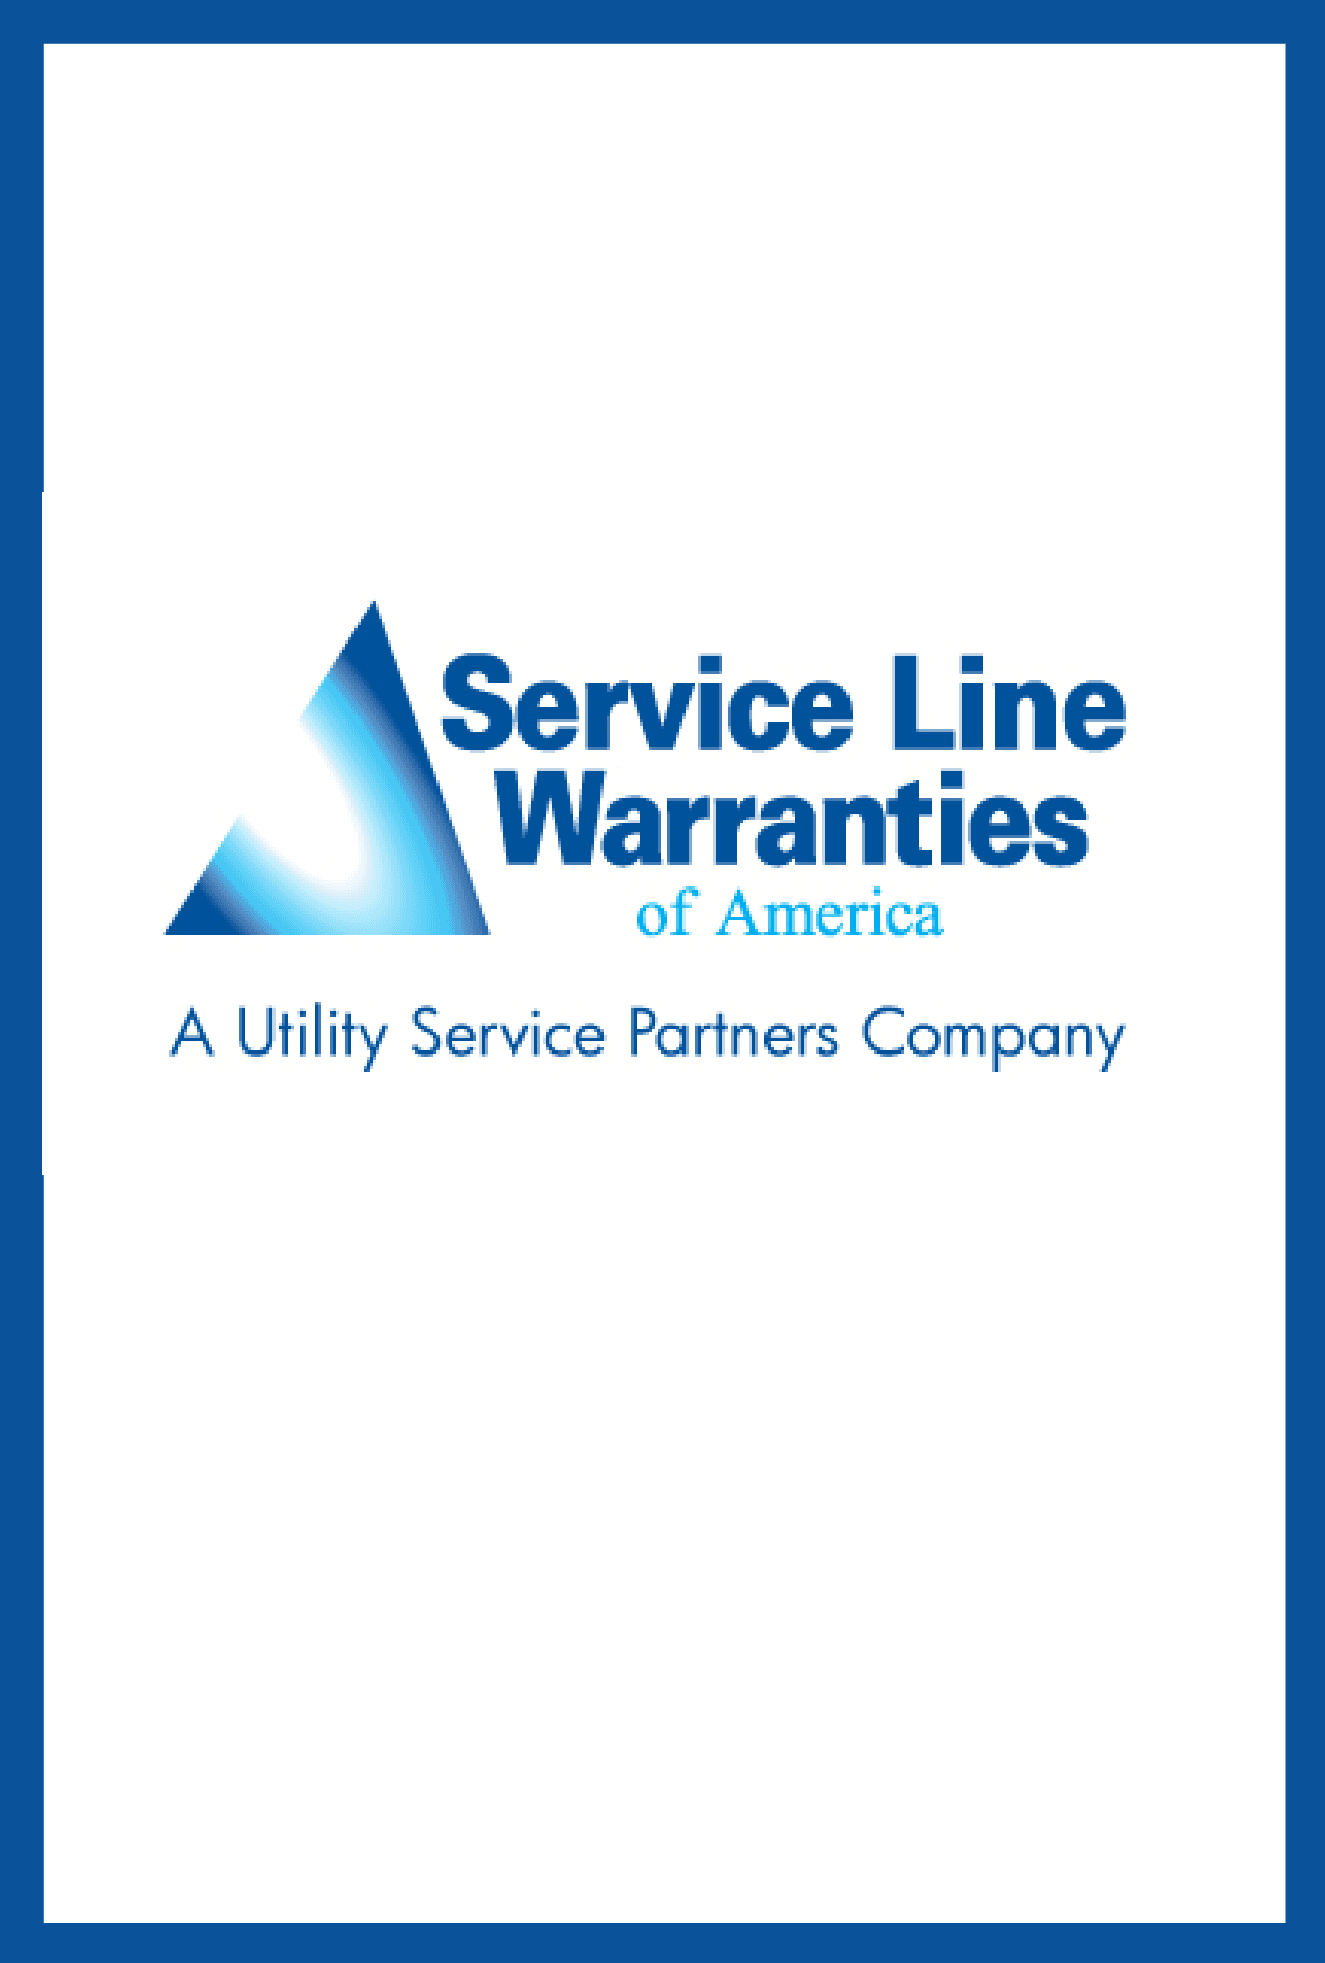 Service Line Warranties of America